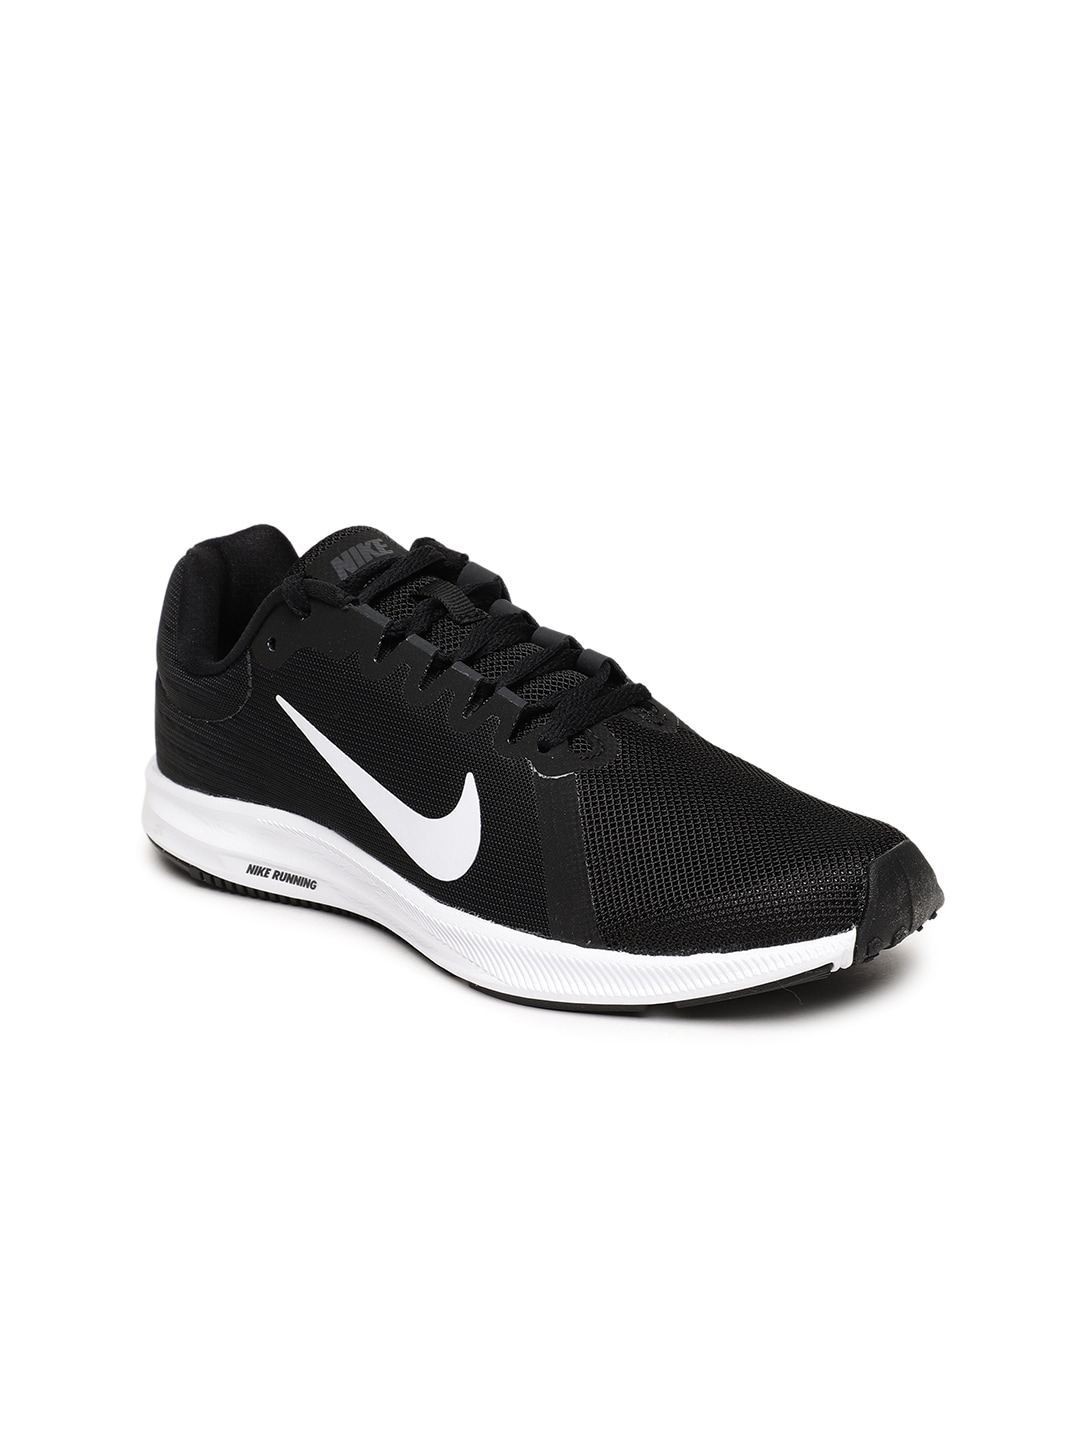 60c84cbd41aa2 Nike Downshifter Footwear - Buy Nike Downshifter Footwear online in India